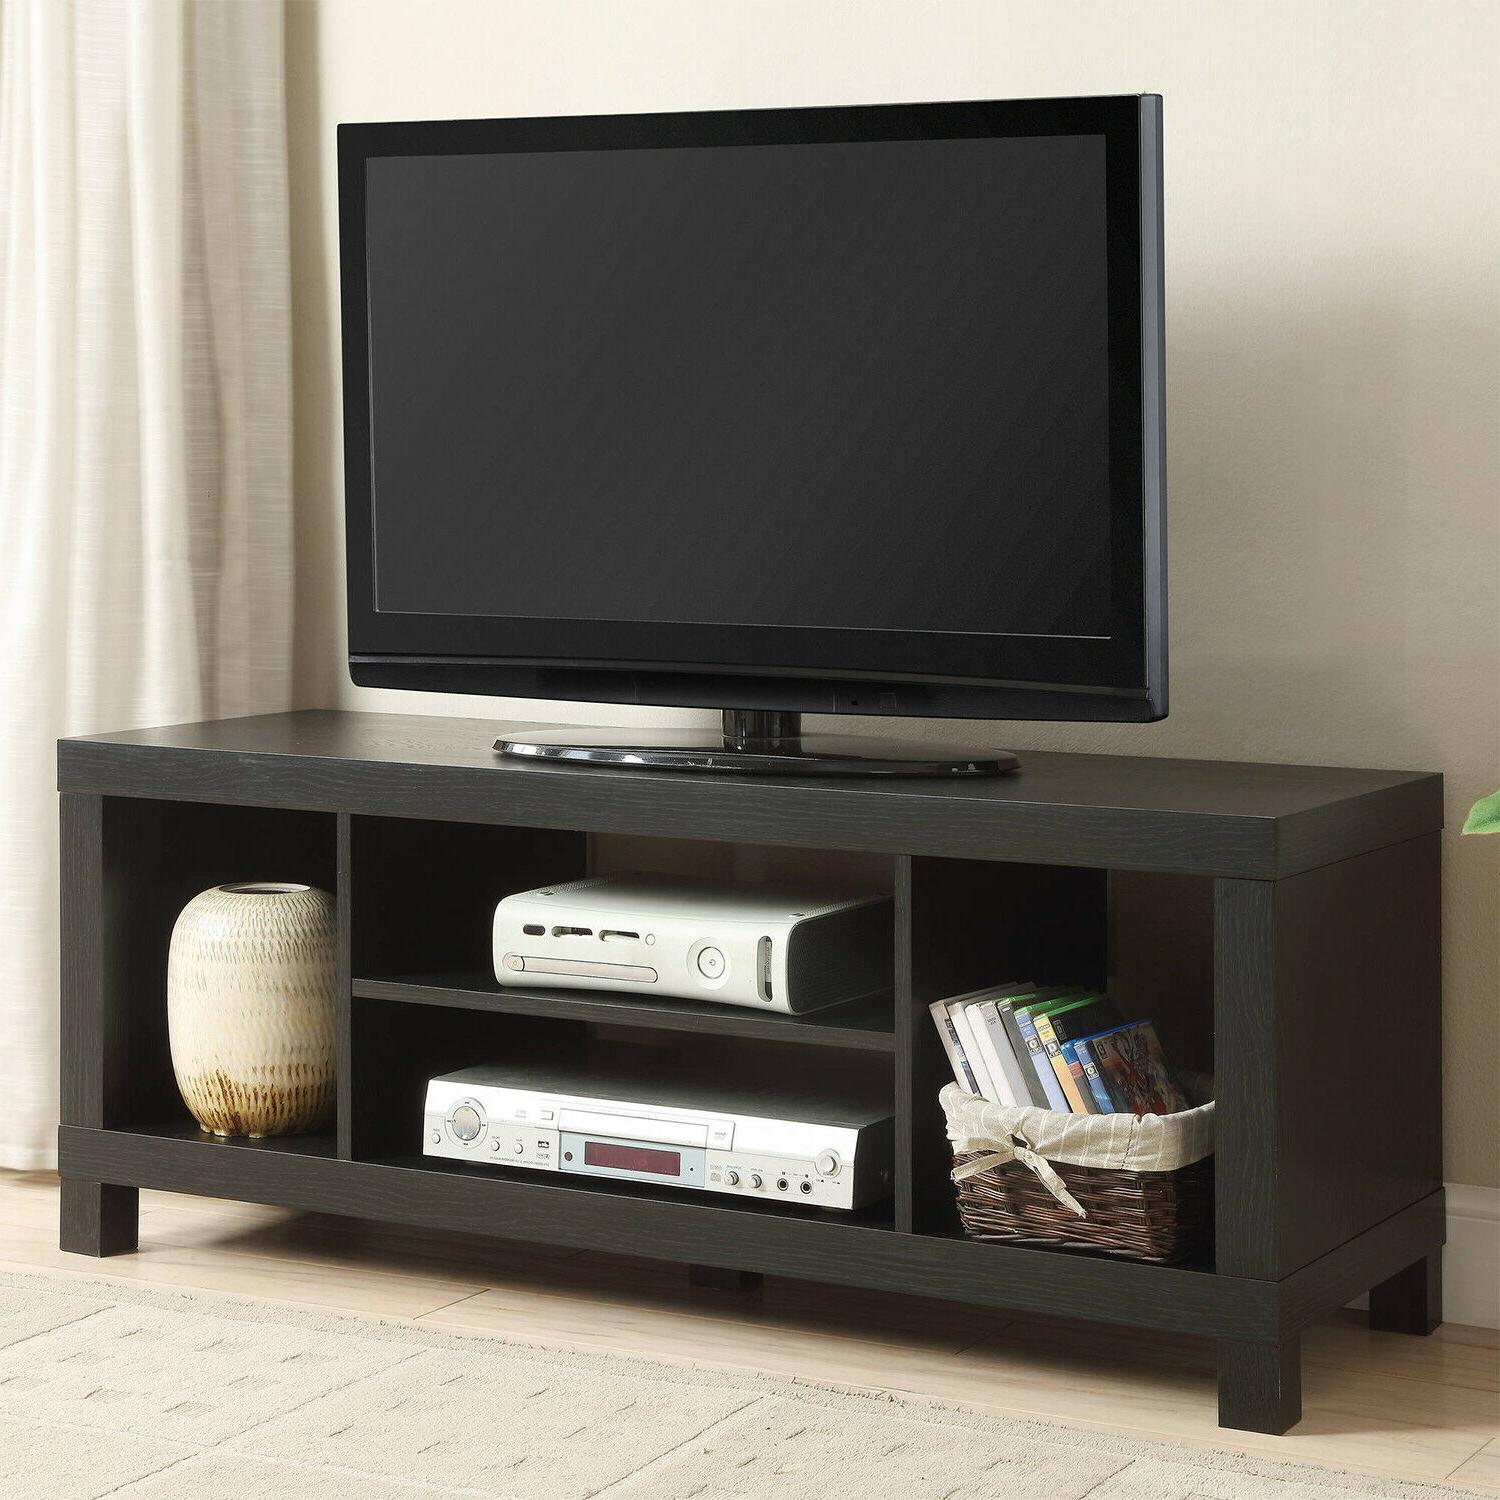 "Black 45"" Wood TV Stand Entertainment Center Media Console S"